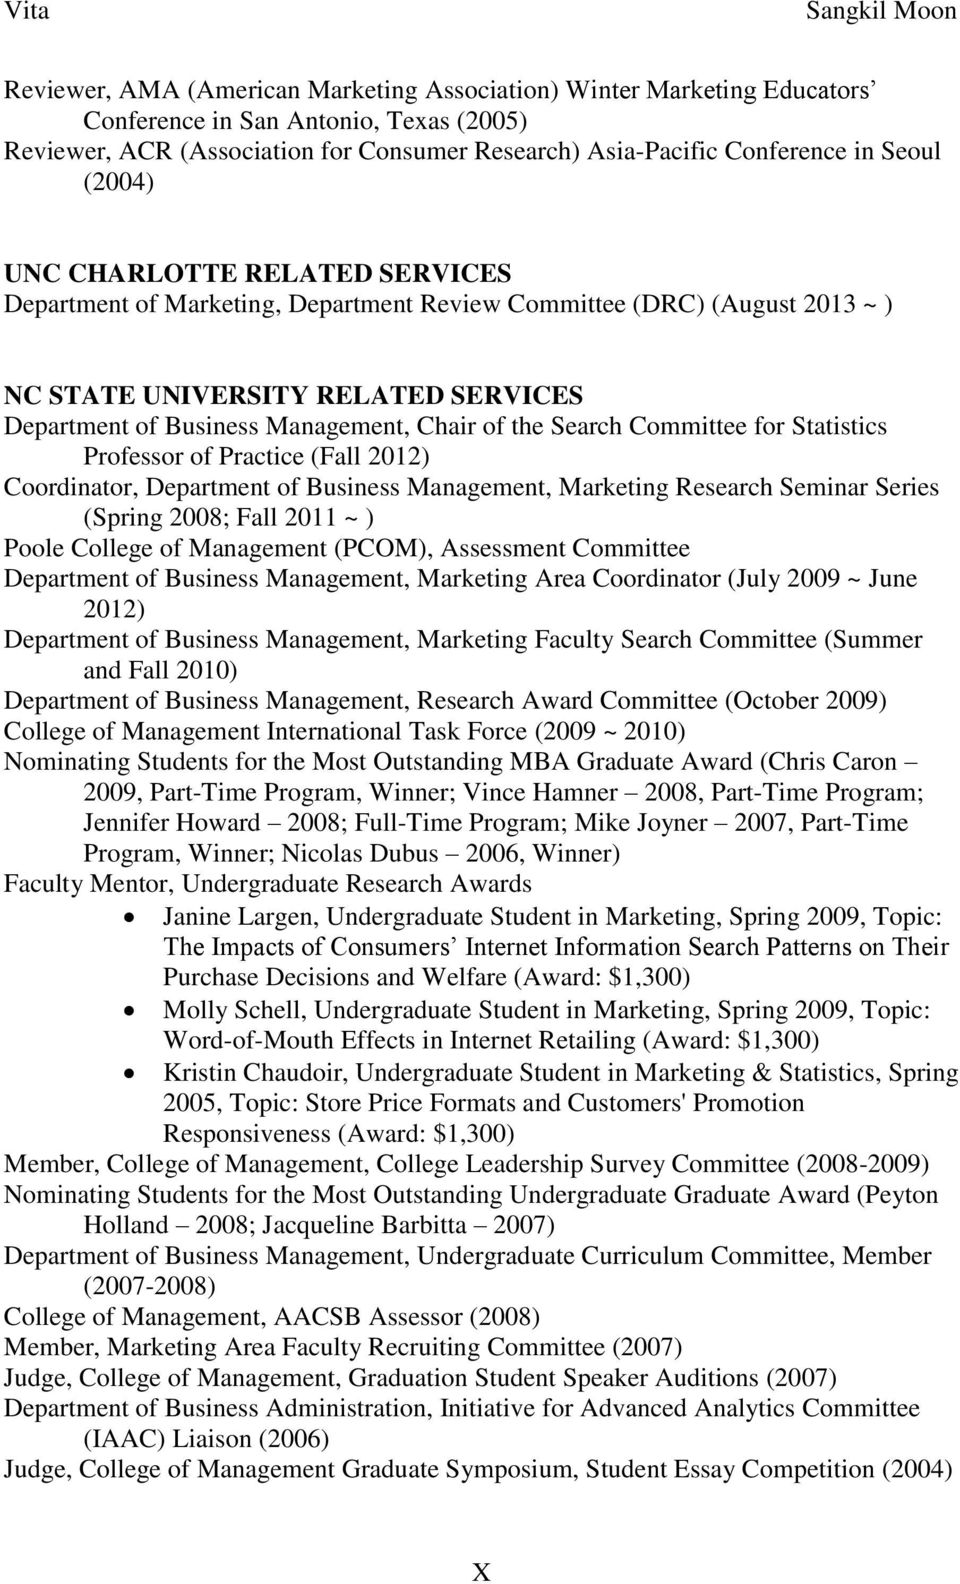 Search Committee for Statistics Professor of Practice (Fall 2012) Coordinator, Department of Business Management, Marketing Research Seminar Series (Spring 2008; Fall 2011 ~ ) Poole College of